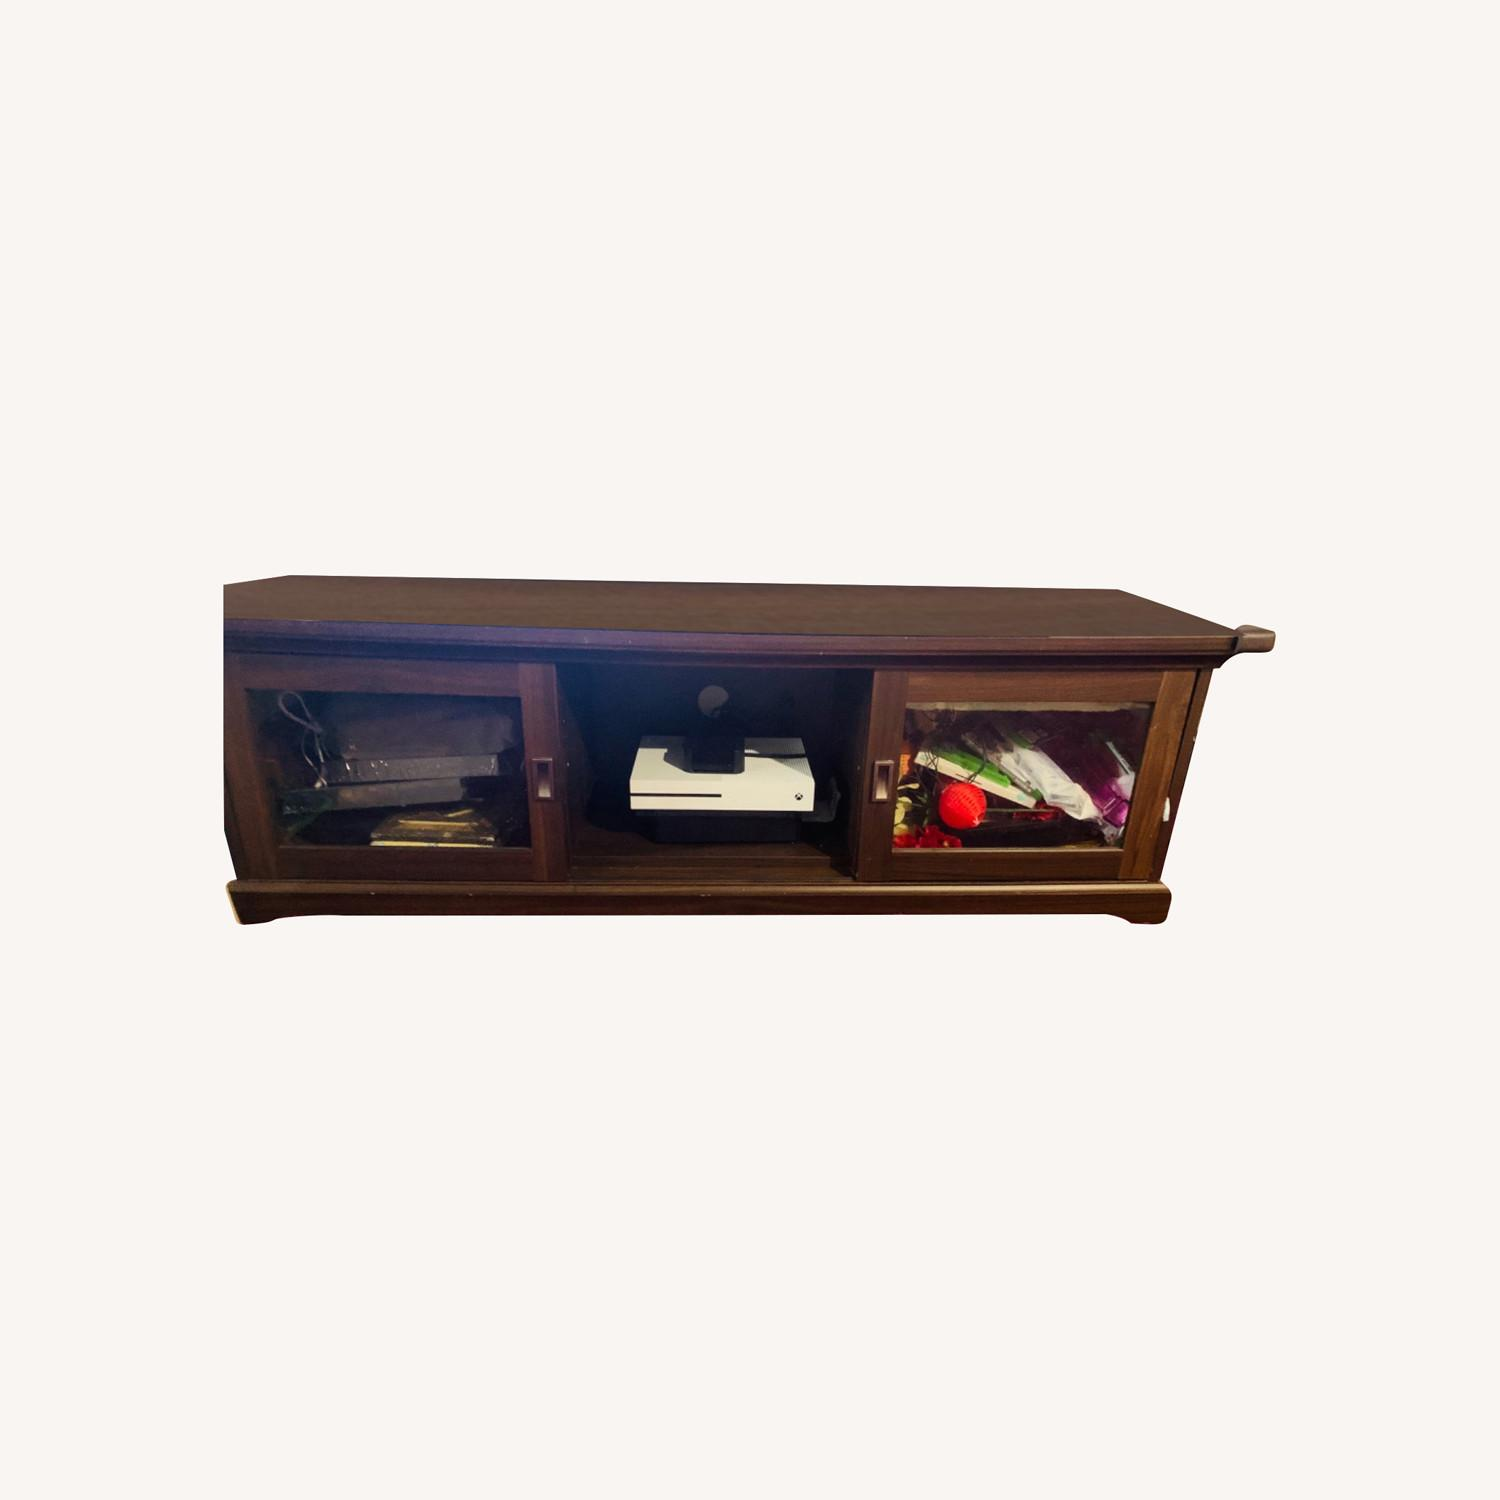 Target Tv-stand with Storage - image-0